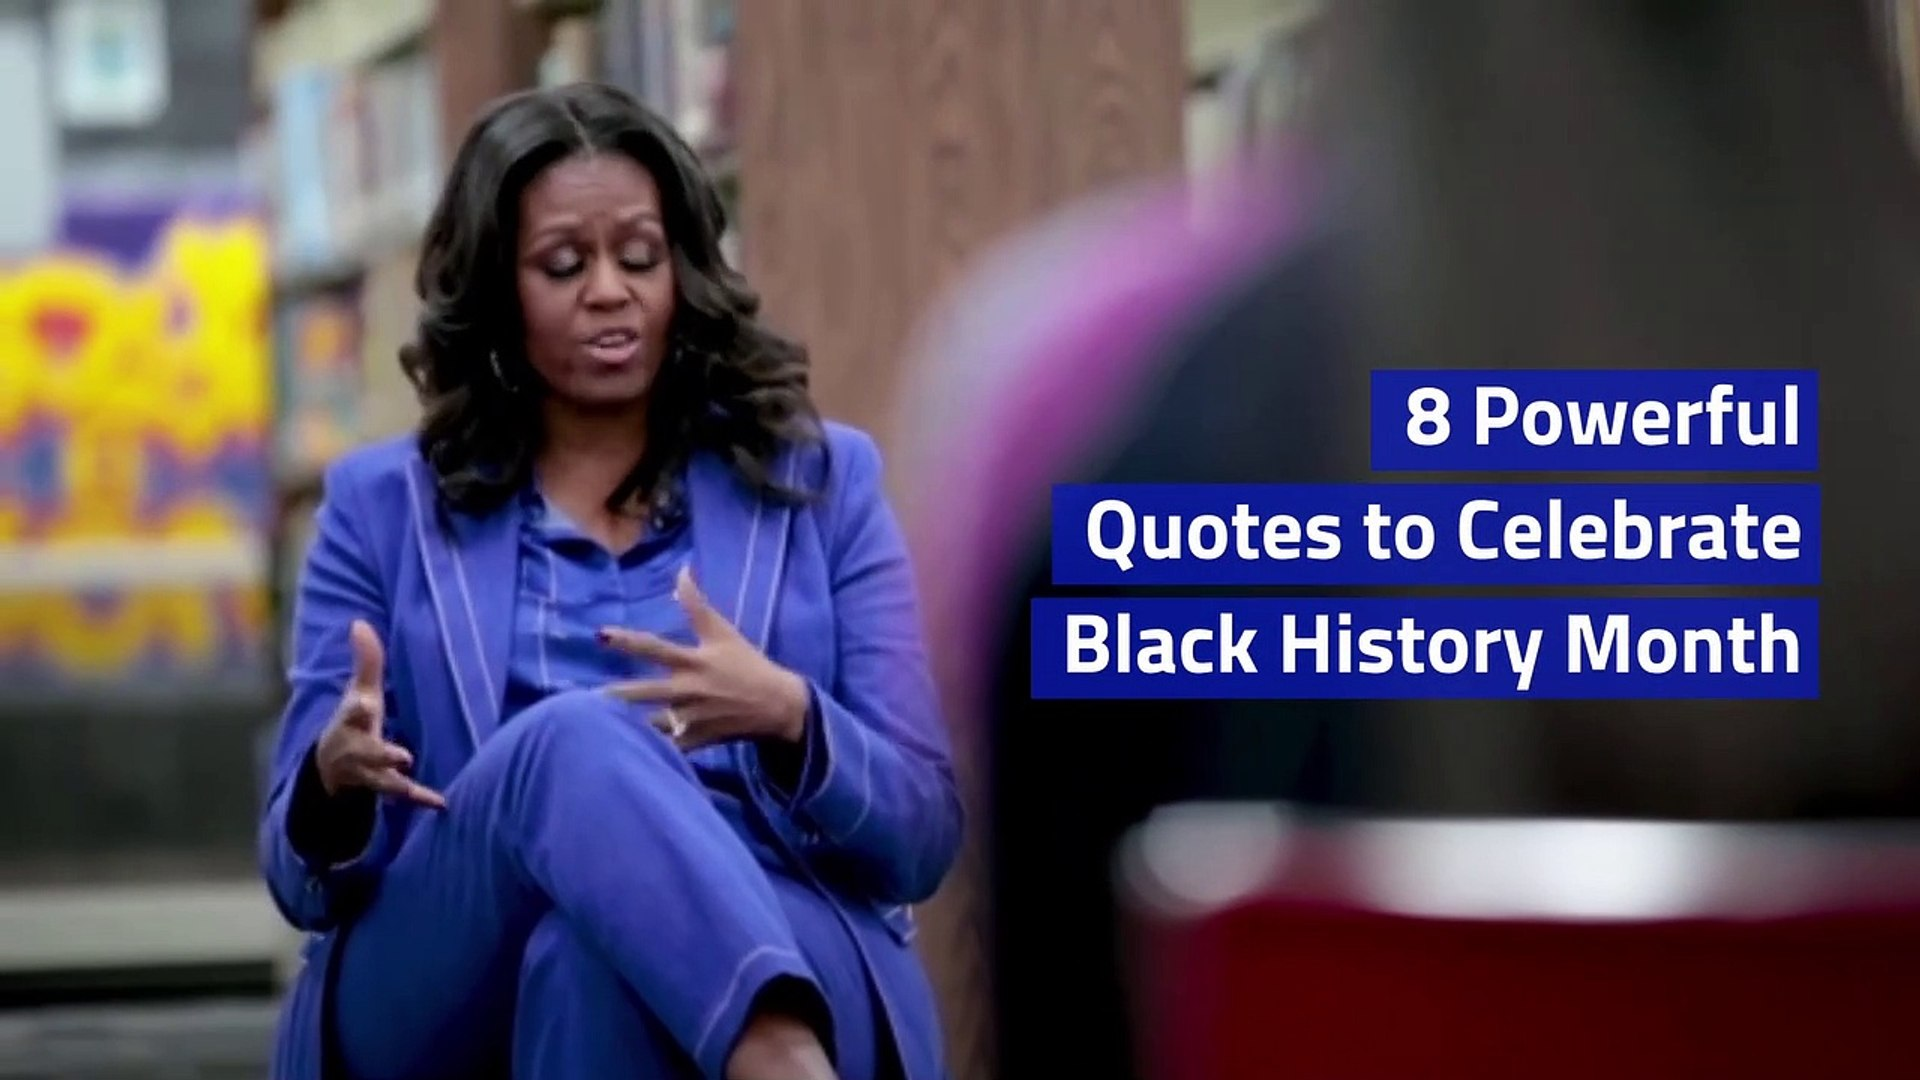 8 Powerful Quotes to Celebrate Black History Month